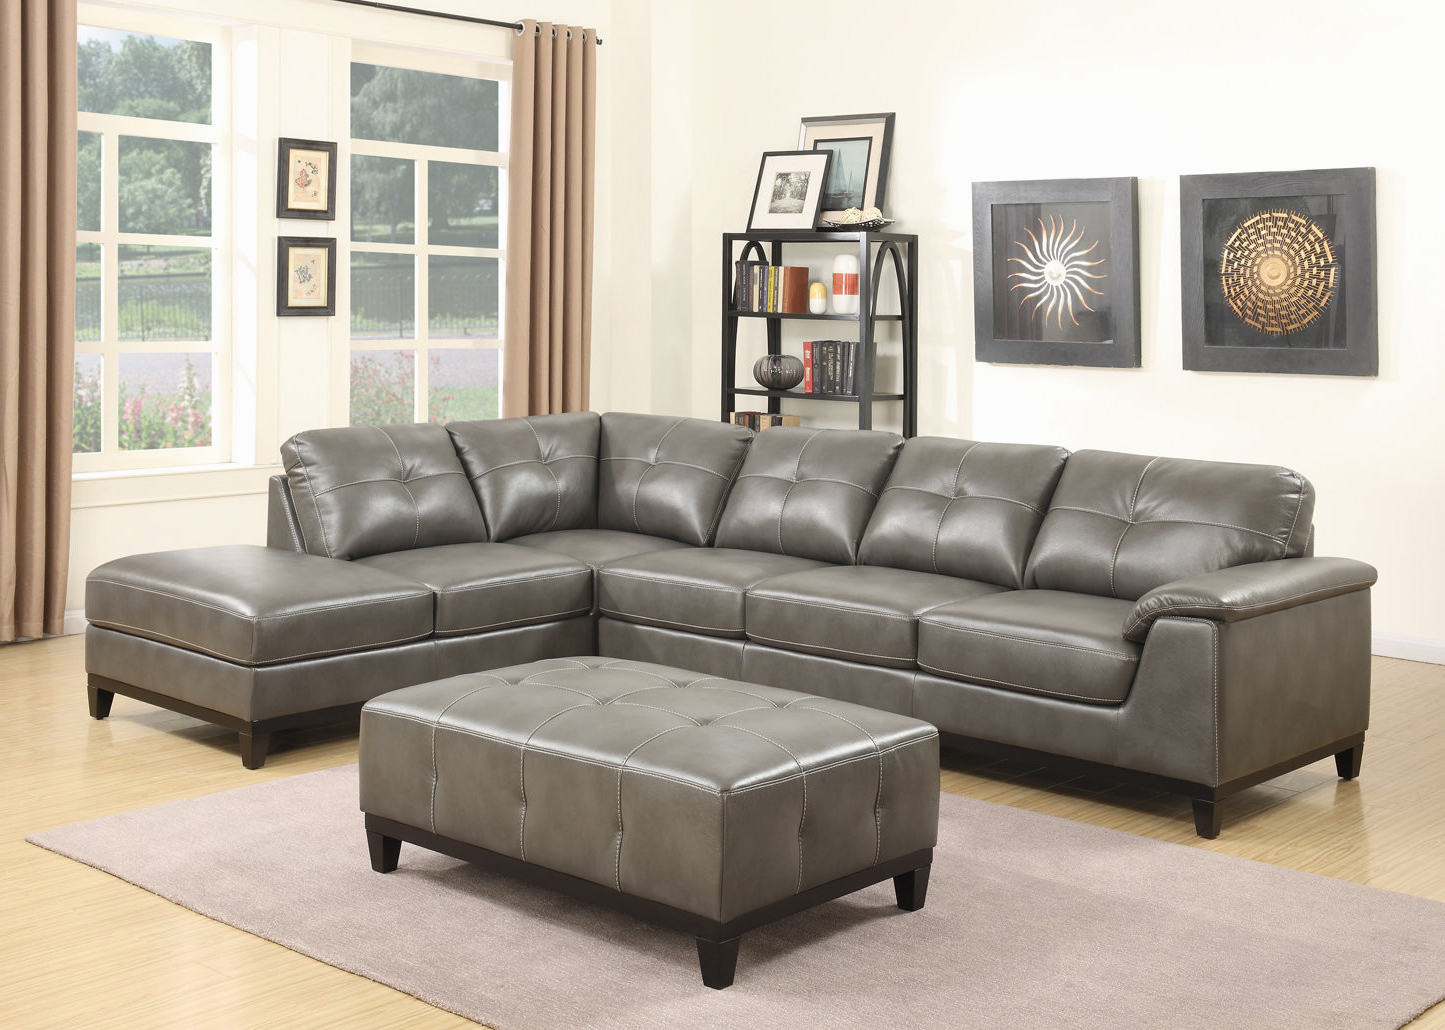 Living Room Sofa With Chaise Beautiful Trent Austin Design Lonato For Recent Aquarius Light Grey 2 Piece Sectionals With Laf Chaise (View 19 of 20)